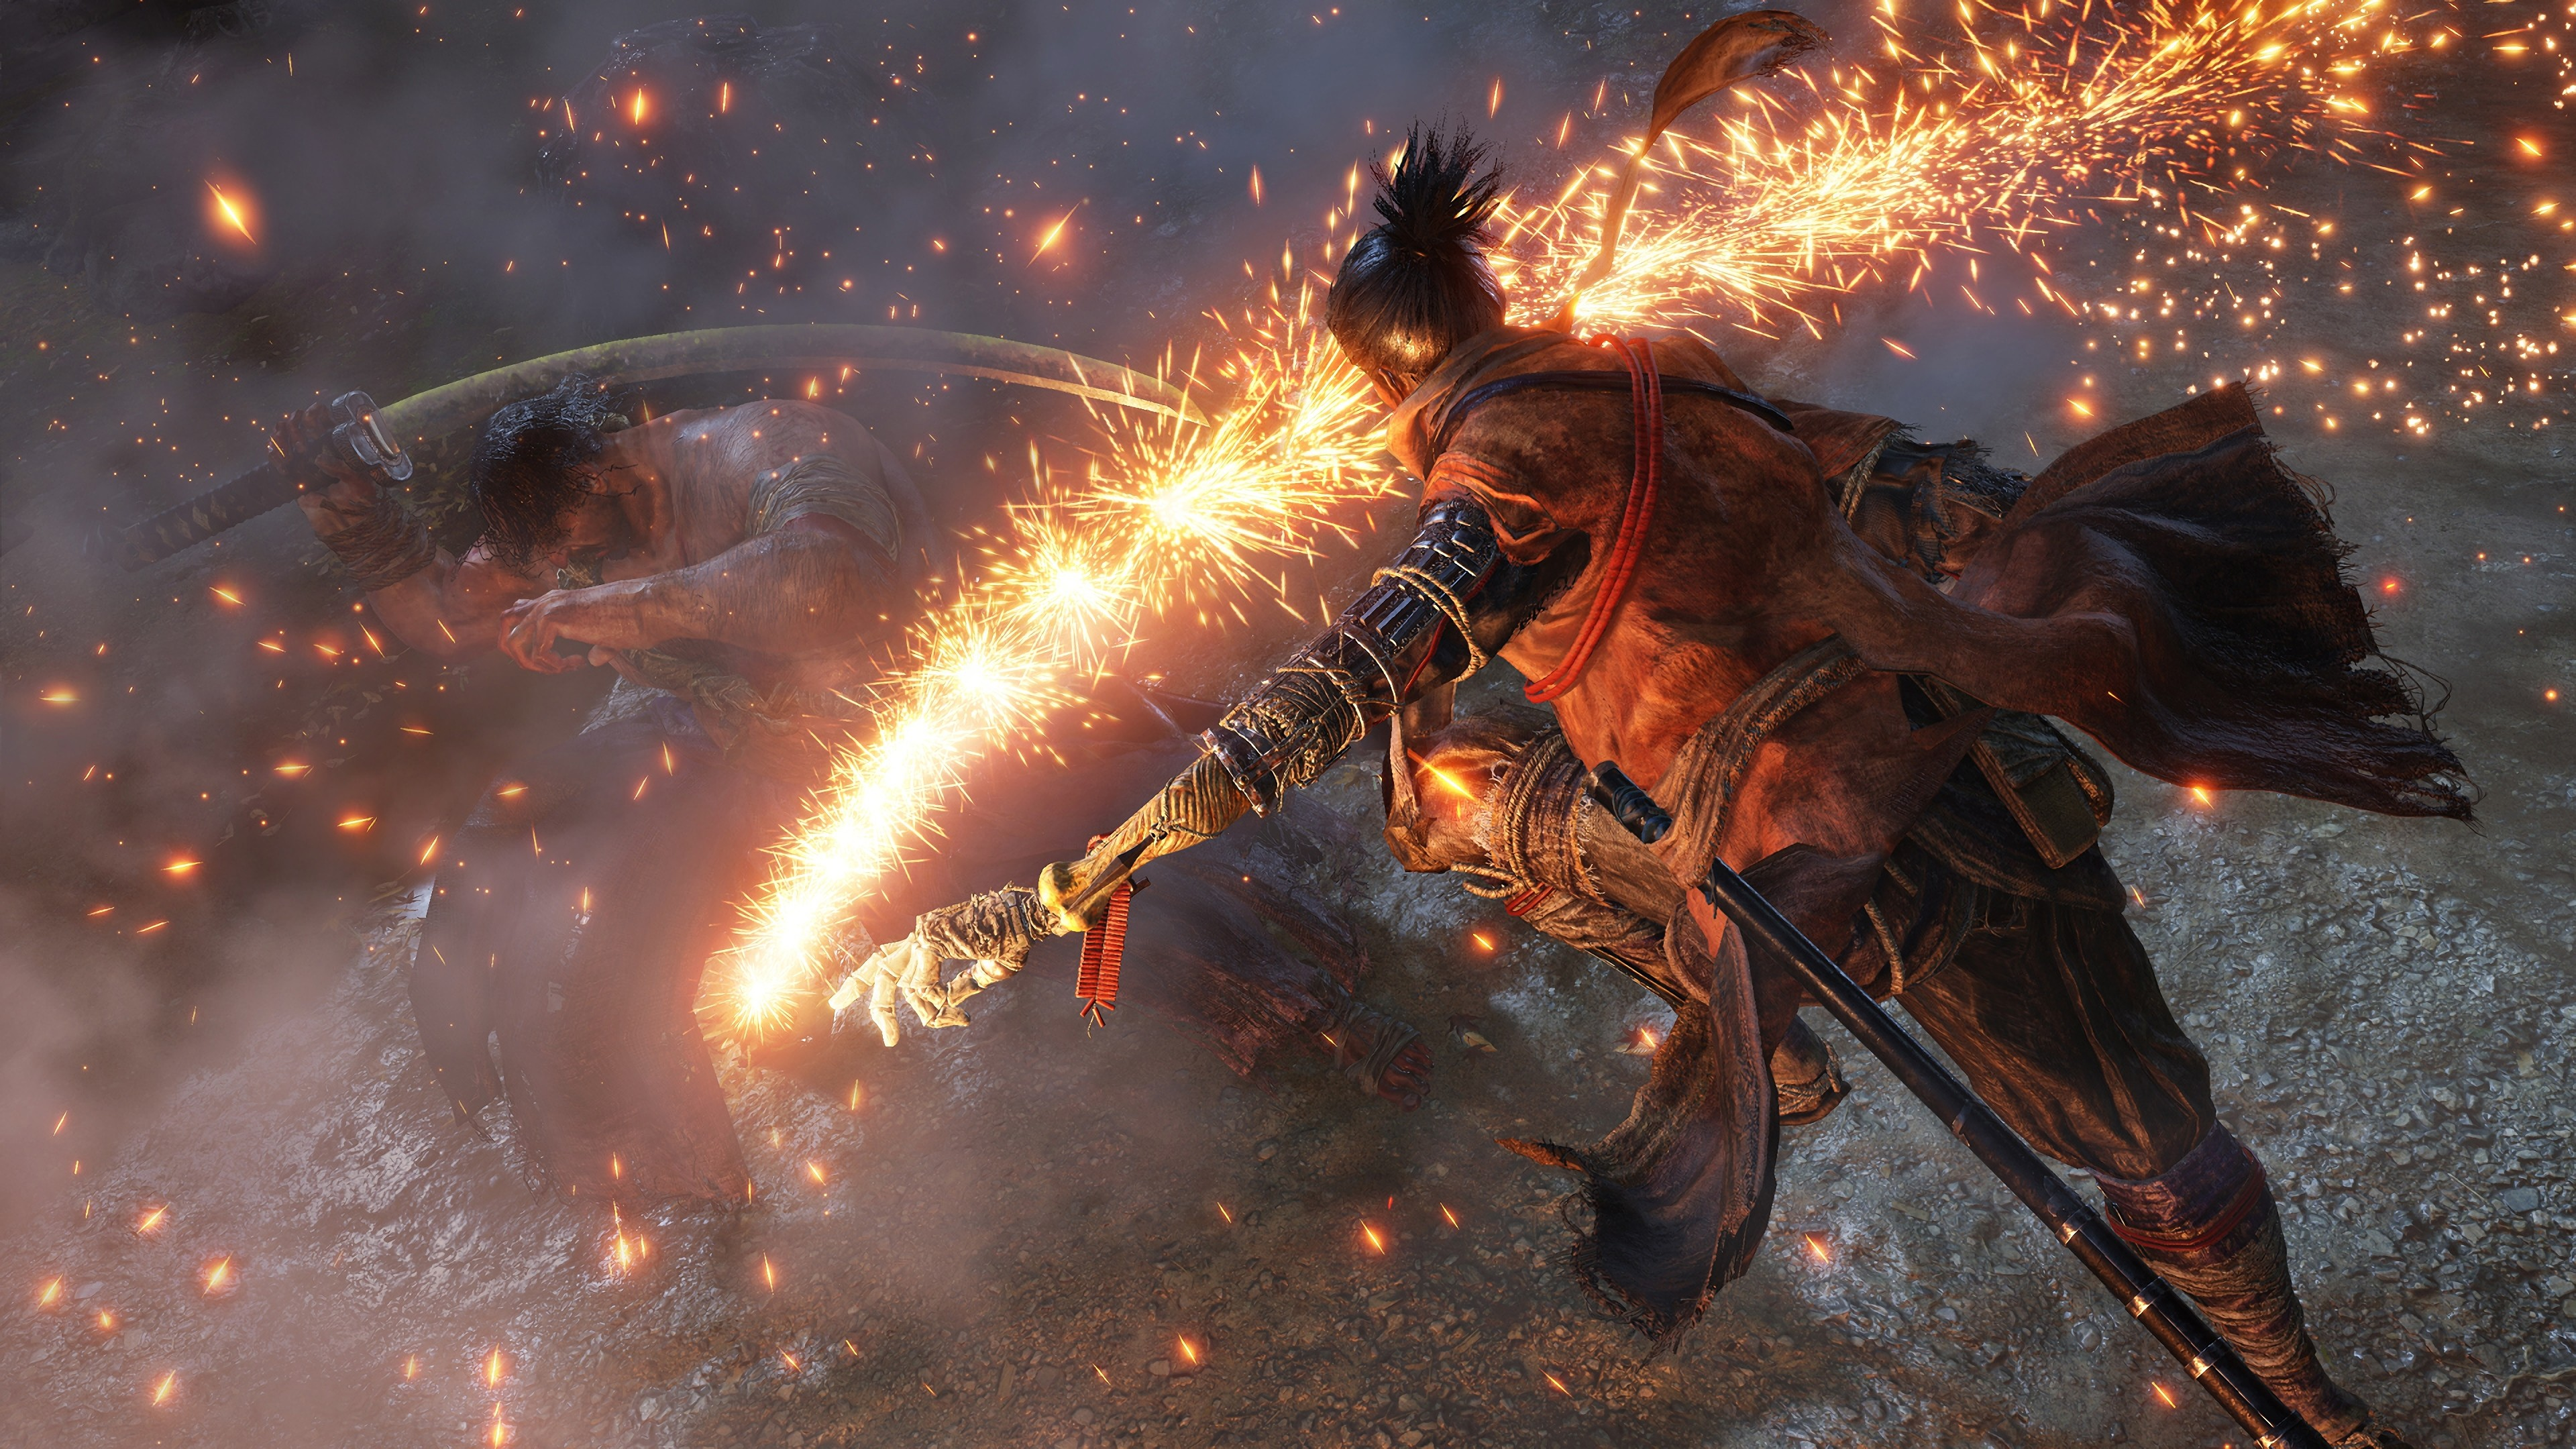 Wallpaper Sekiro Shadows Die Twice E3 2018 Screenshot